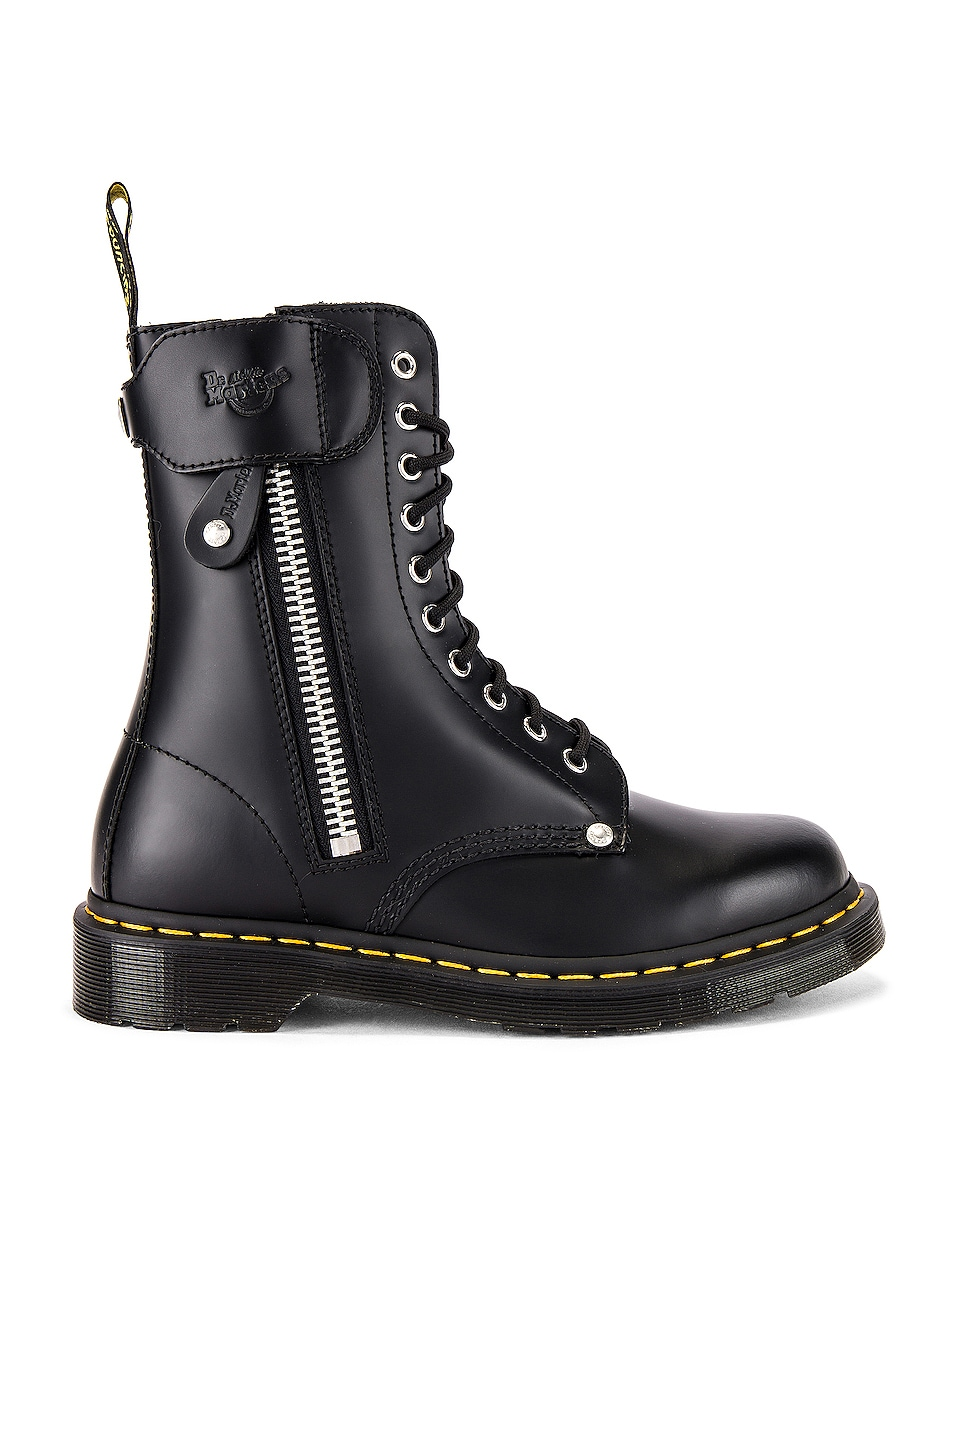 Dr. Martens x Schott 1490 10 Eye Boot in Black